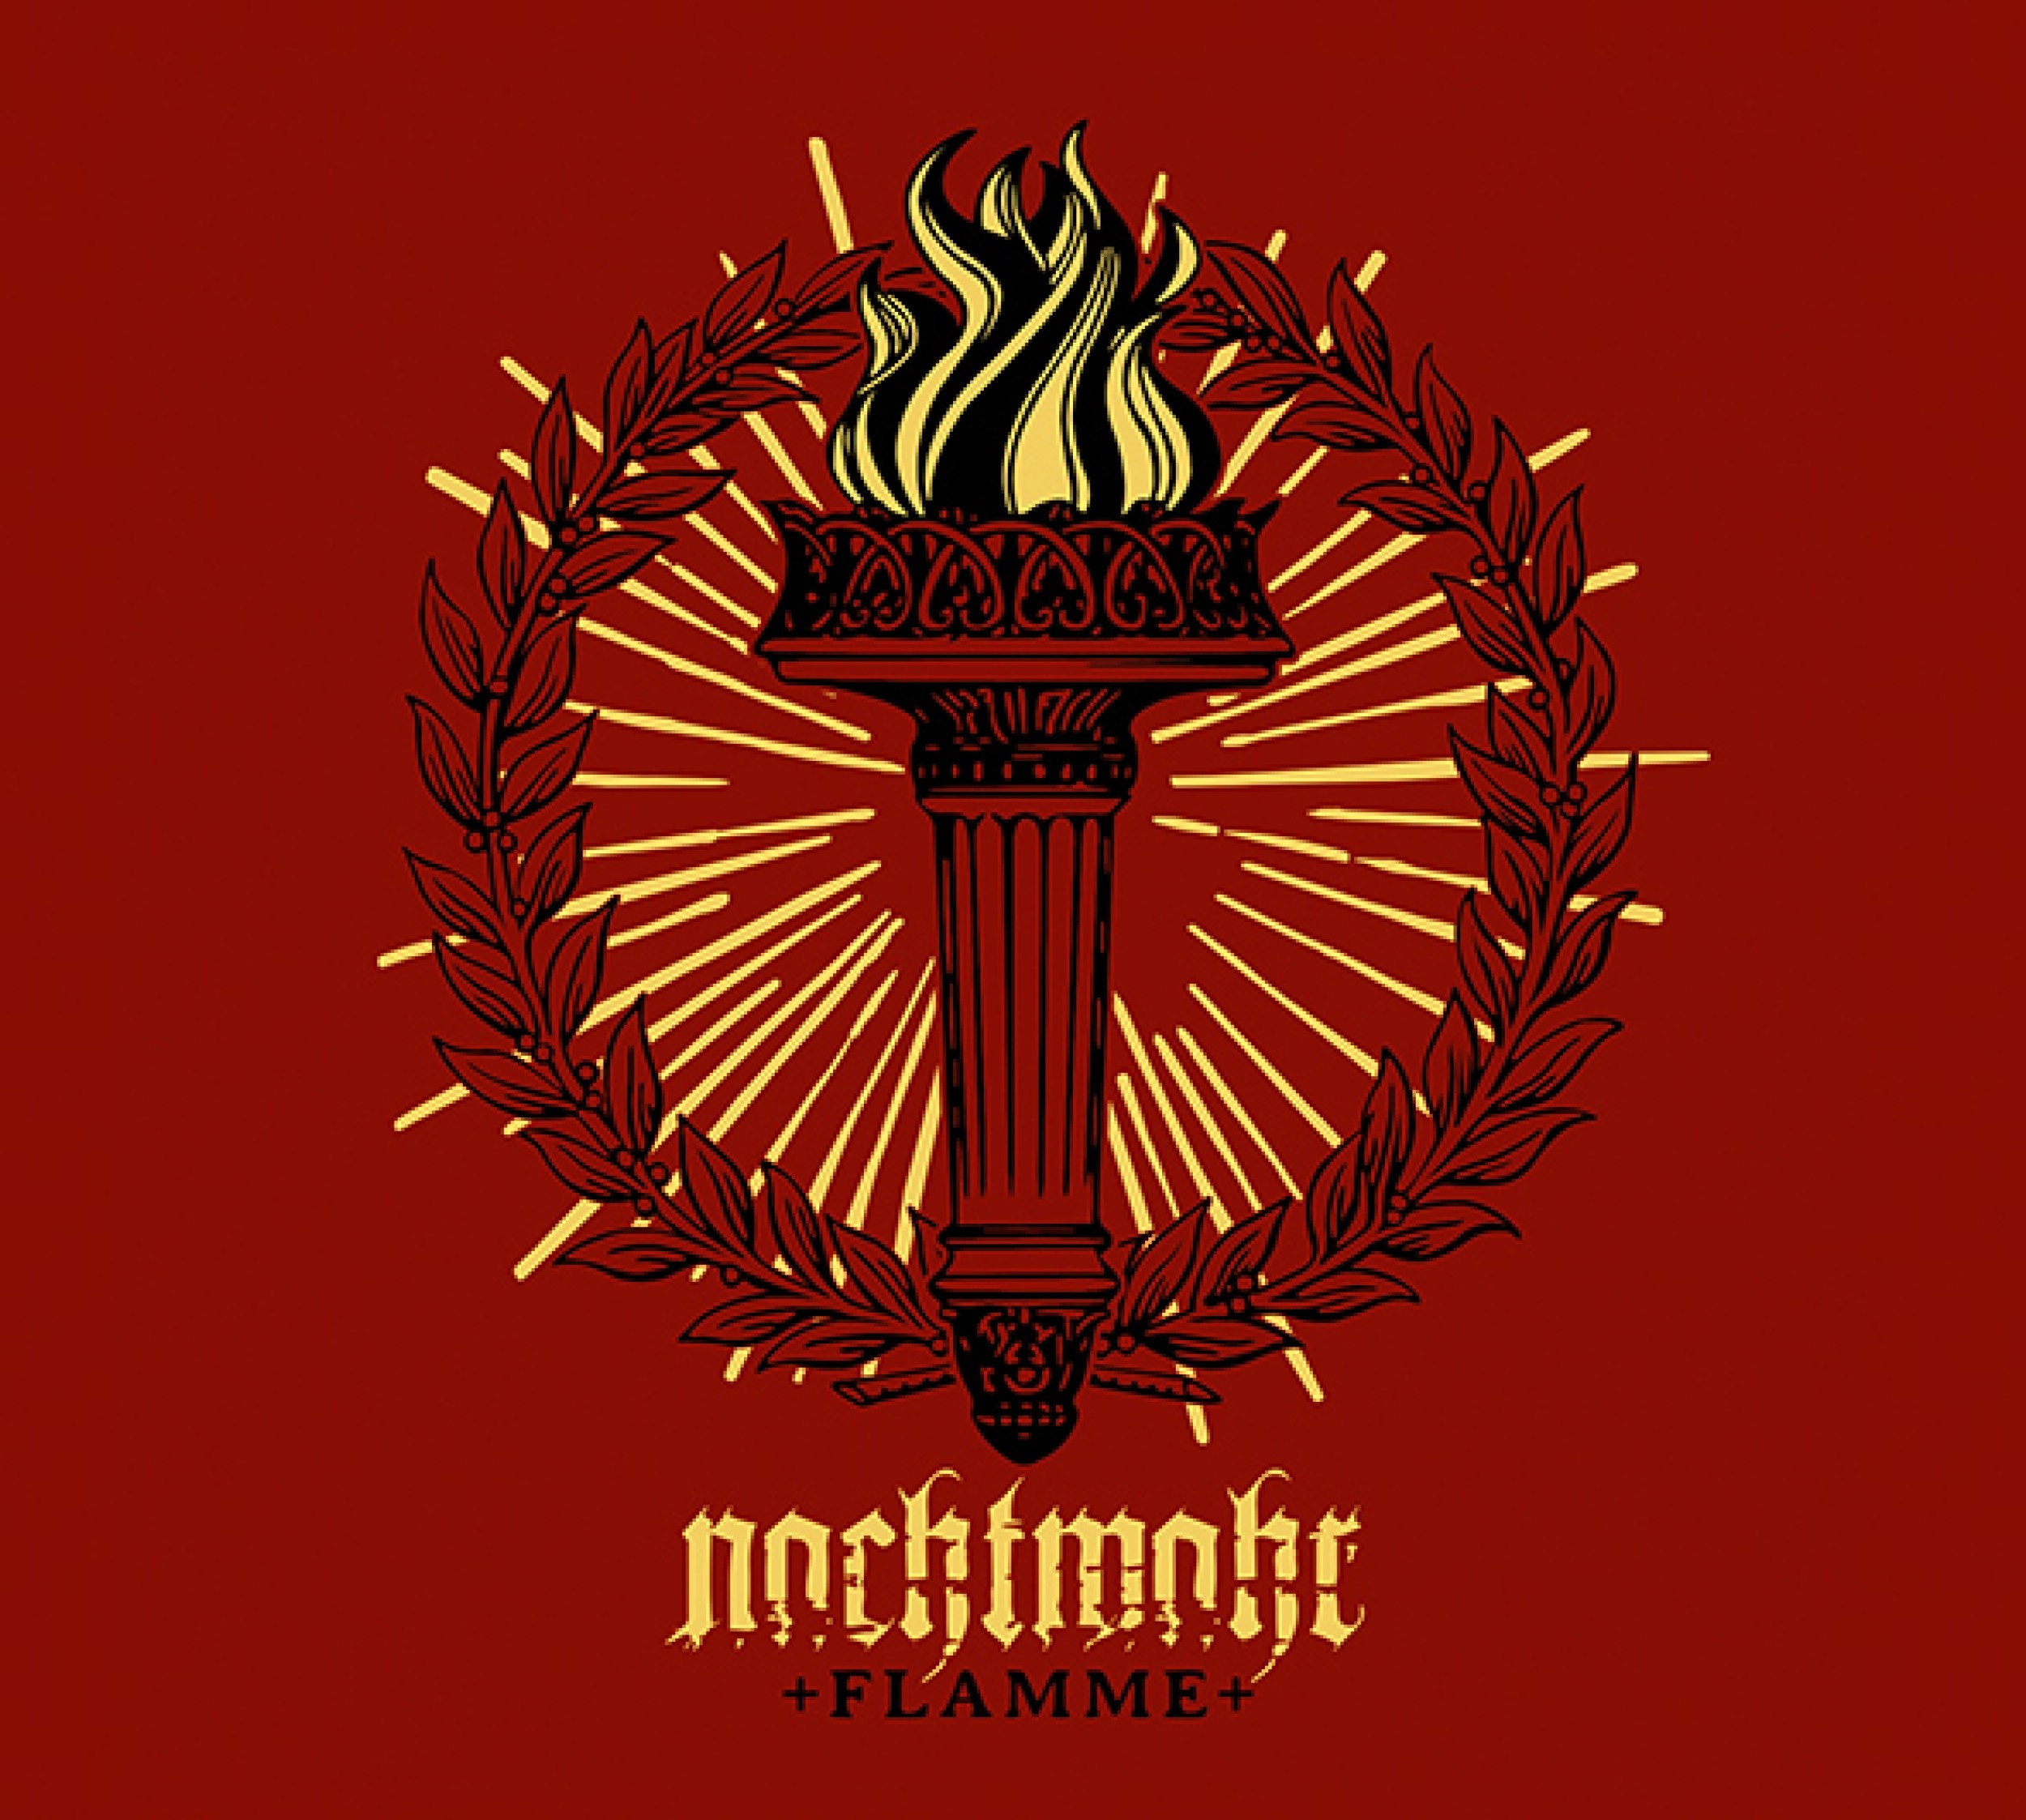 Nachtmahr - Flamme (Limited Edition) - CD